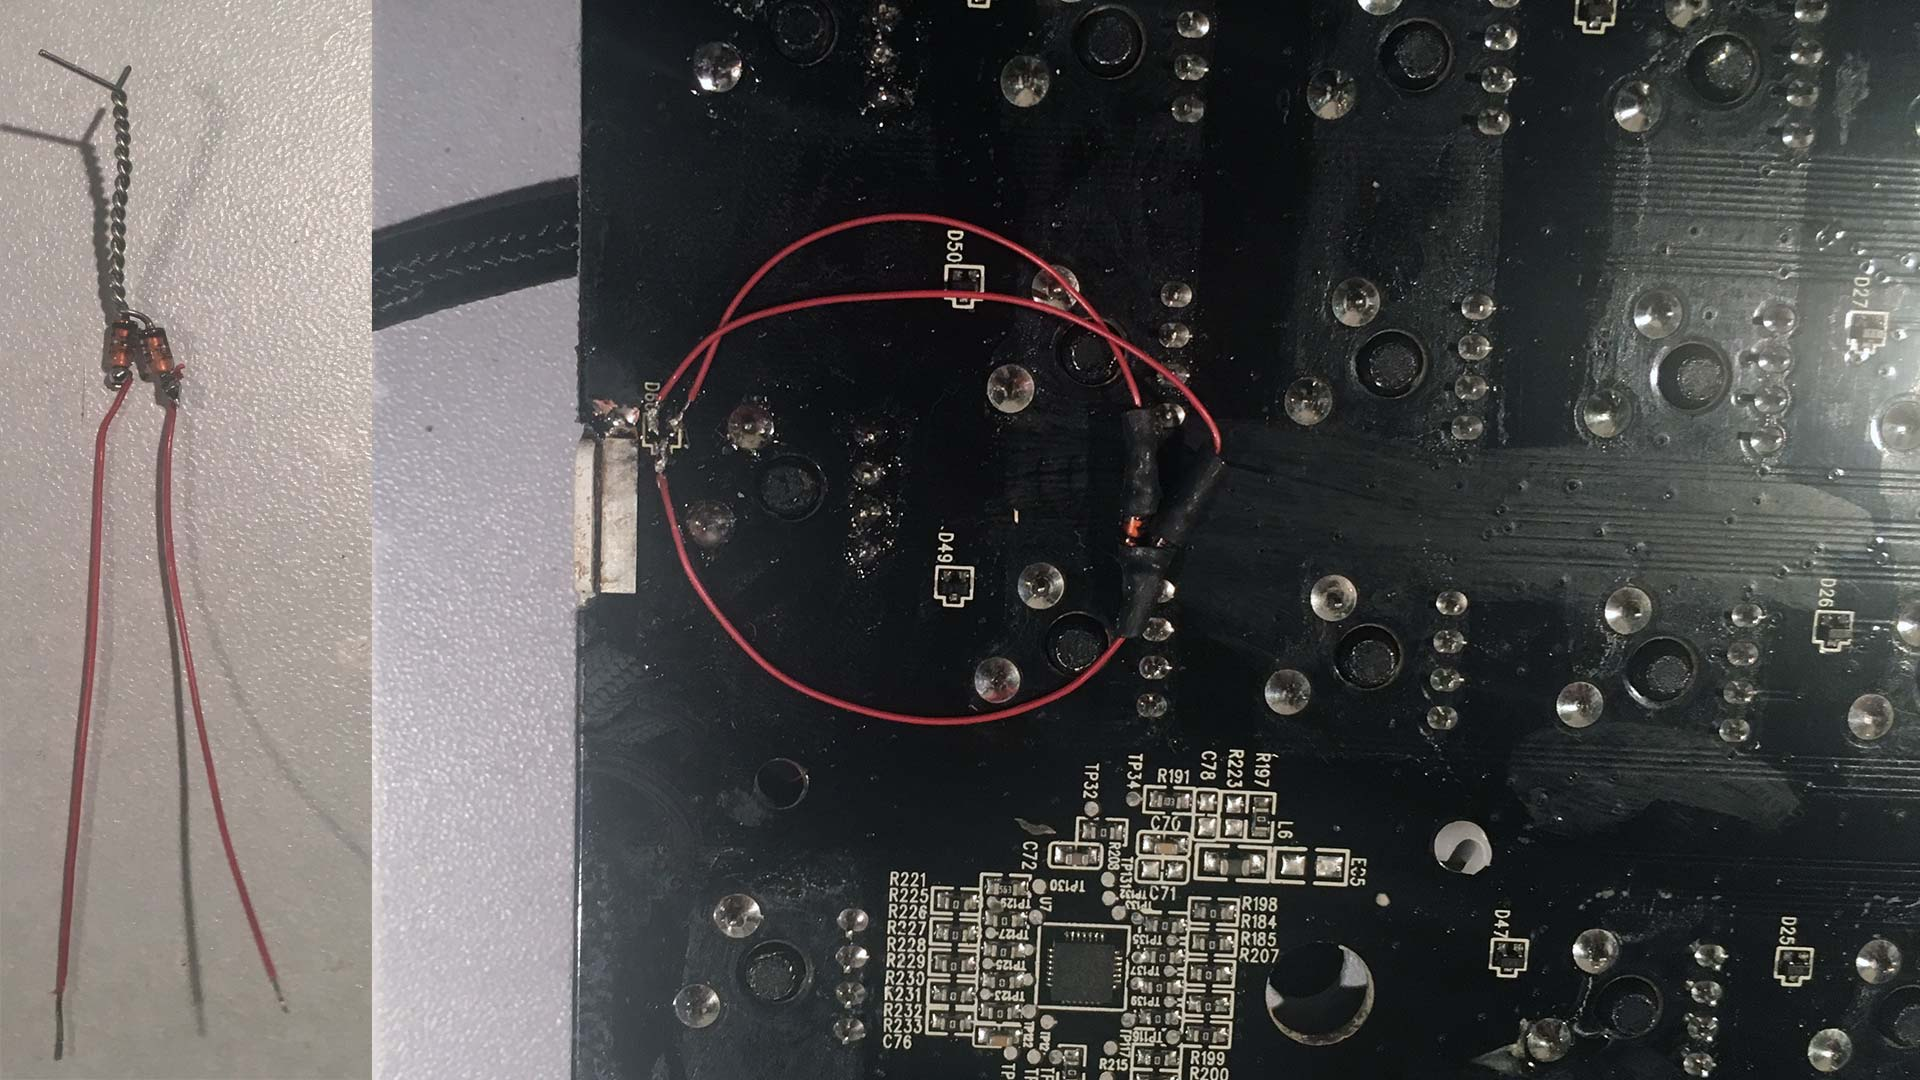 Razer Blackwidow 2014 diassassembly - hack diodes!